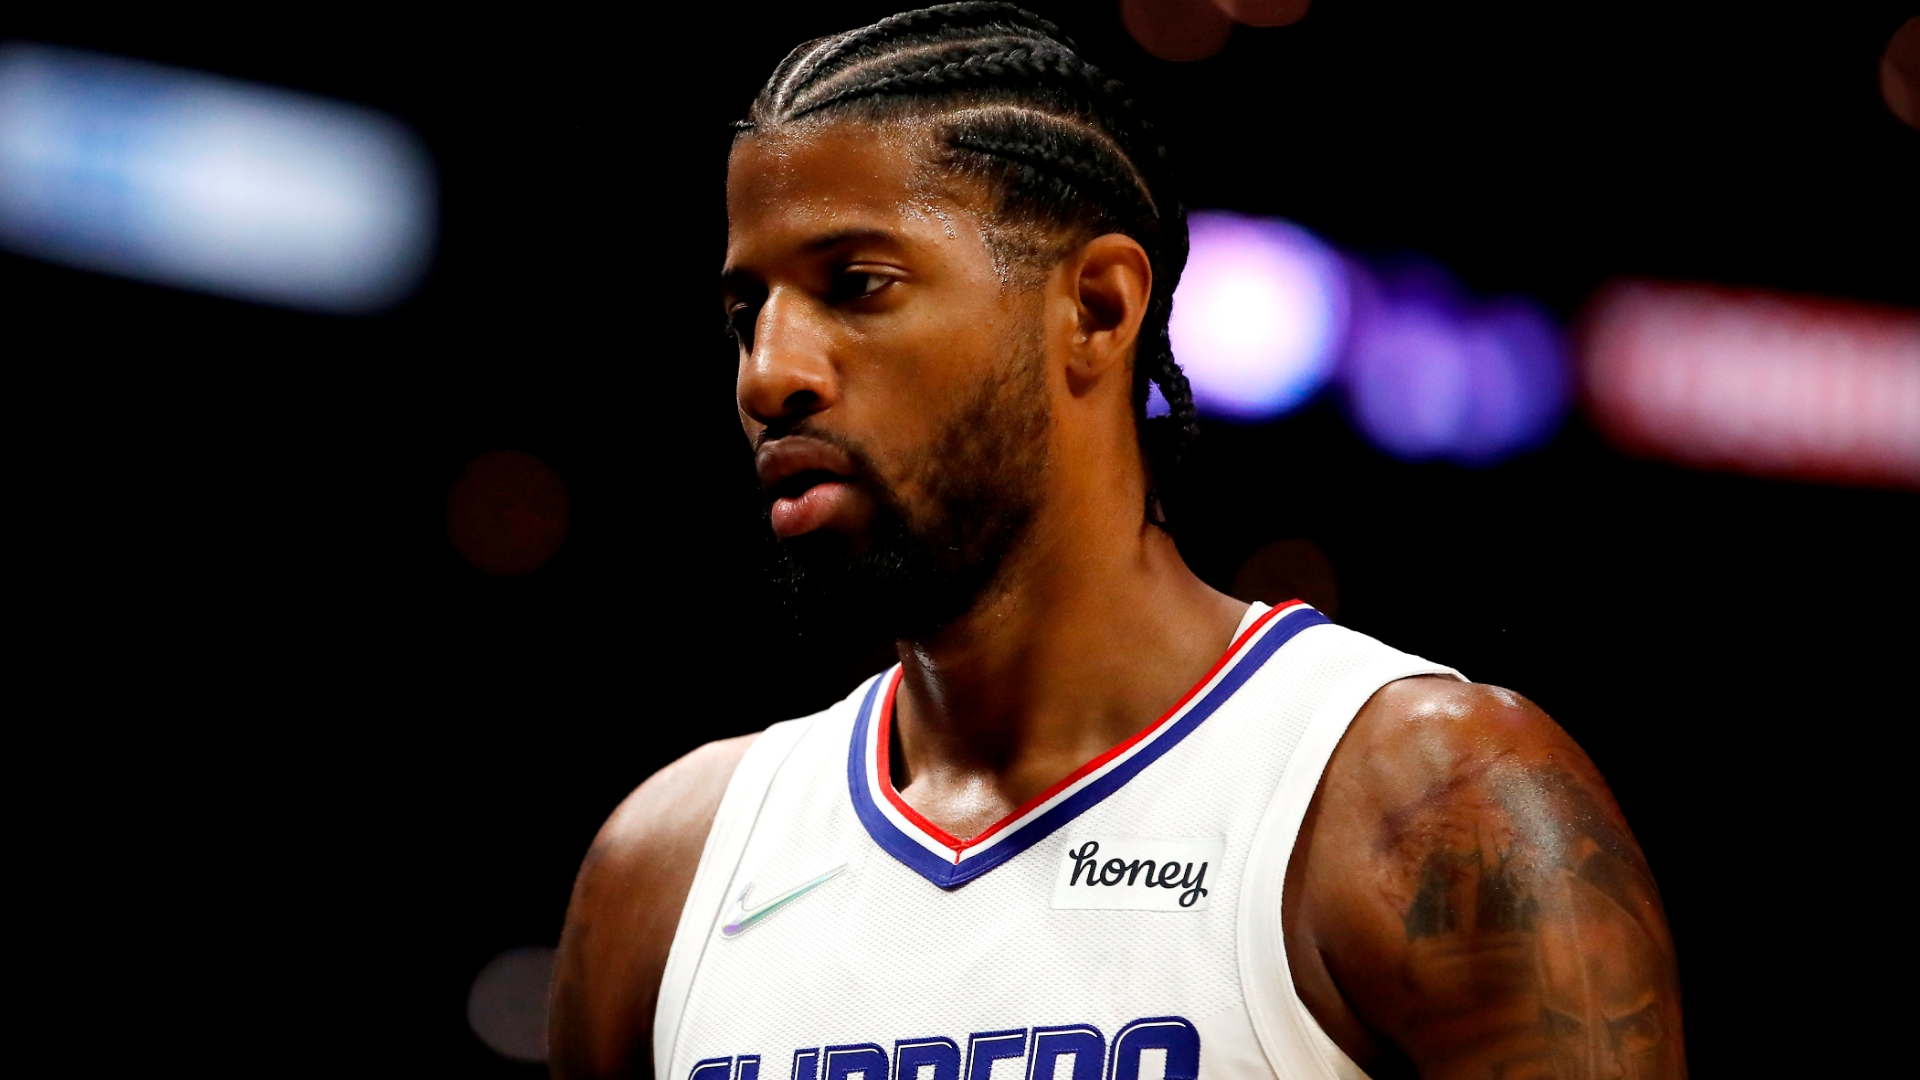 Kawhi Leonard's injury and the domino effect on rest of the Clippers' players